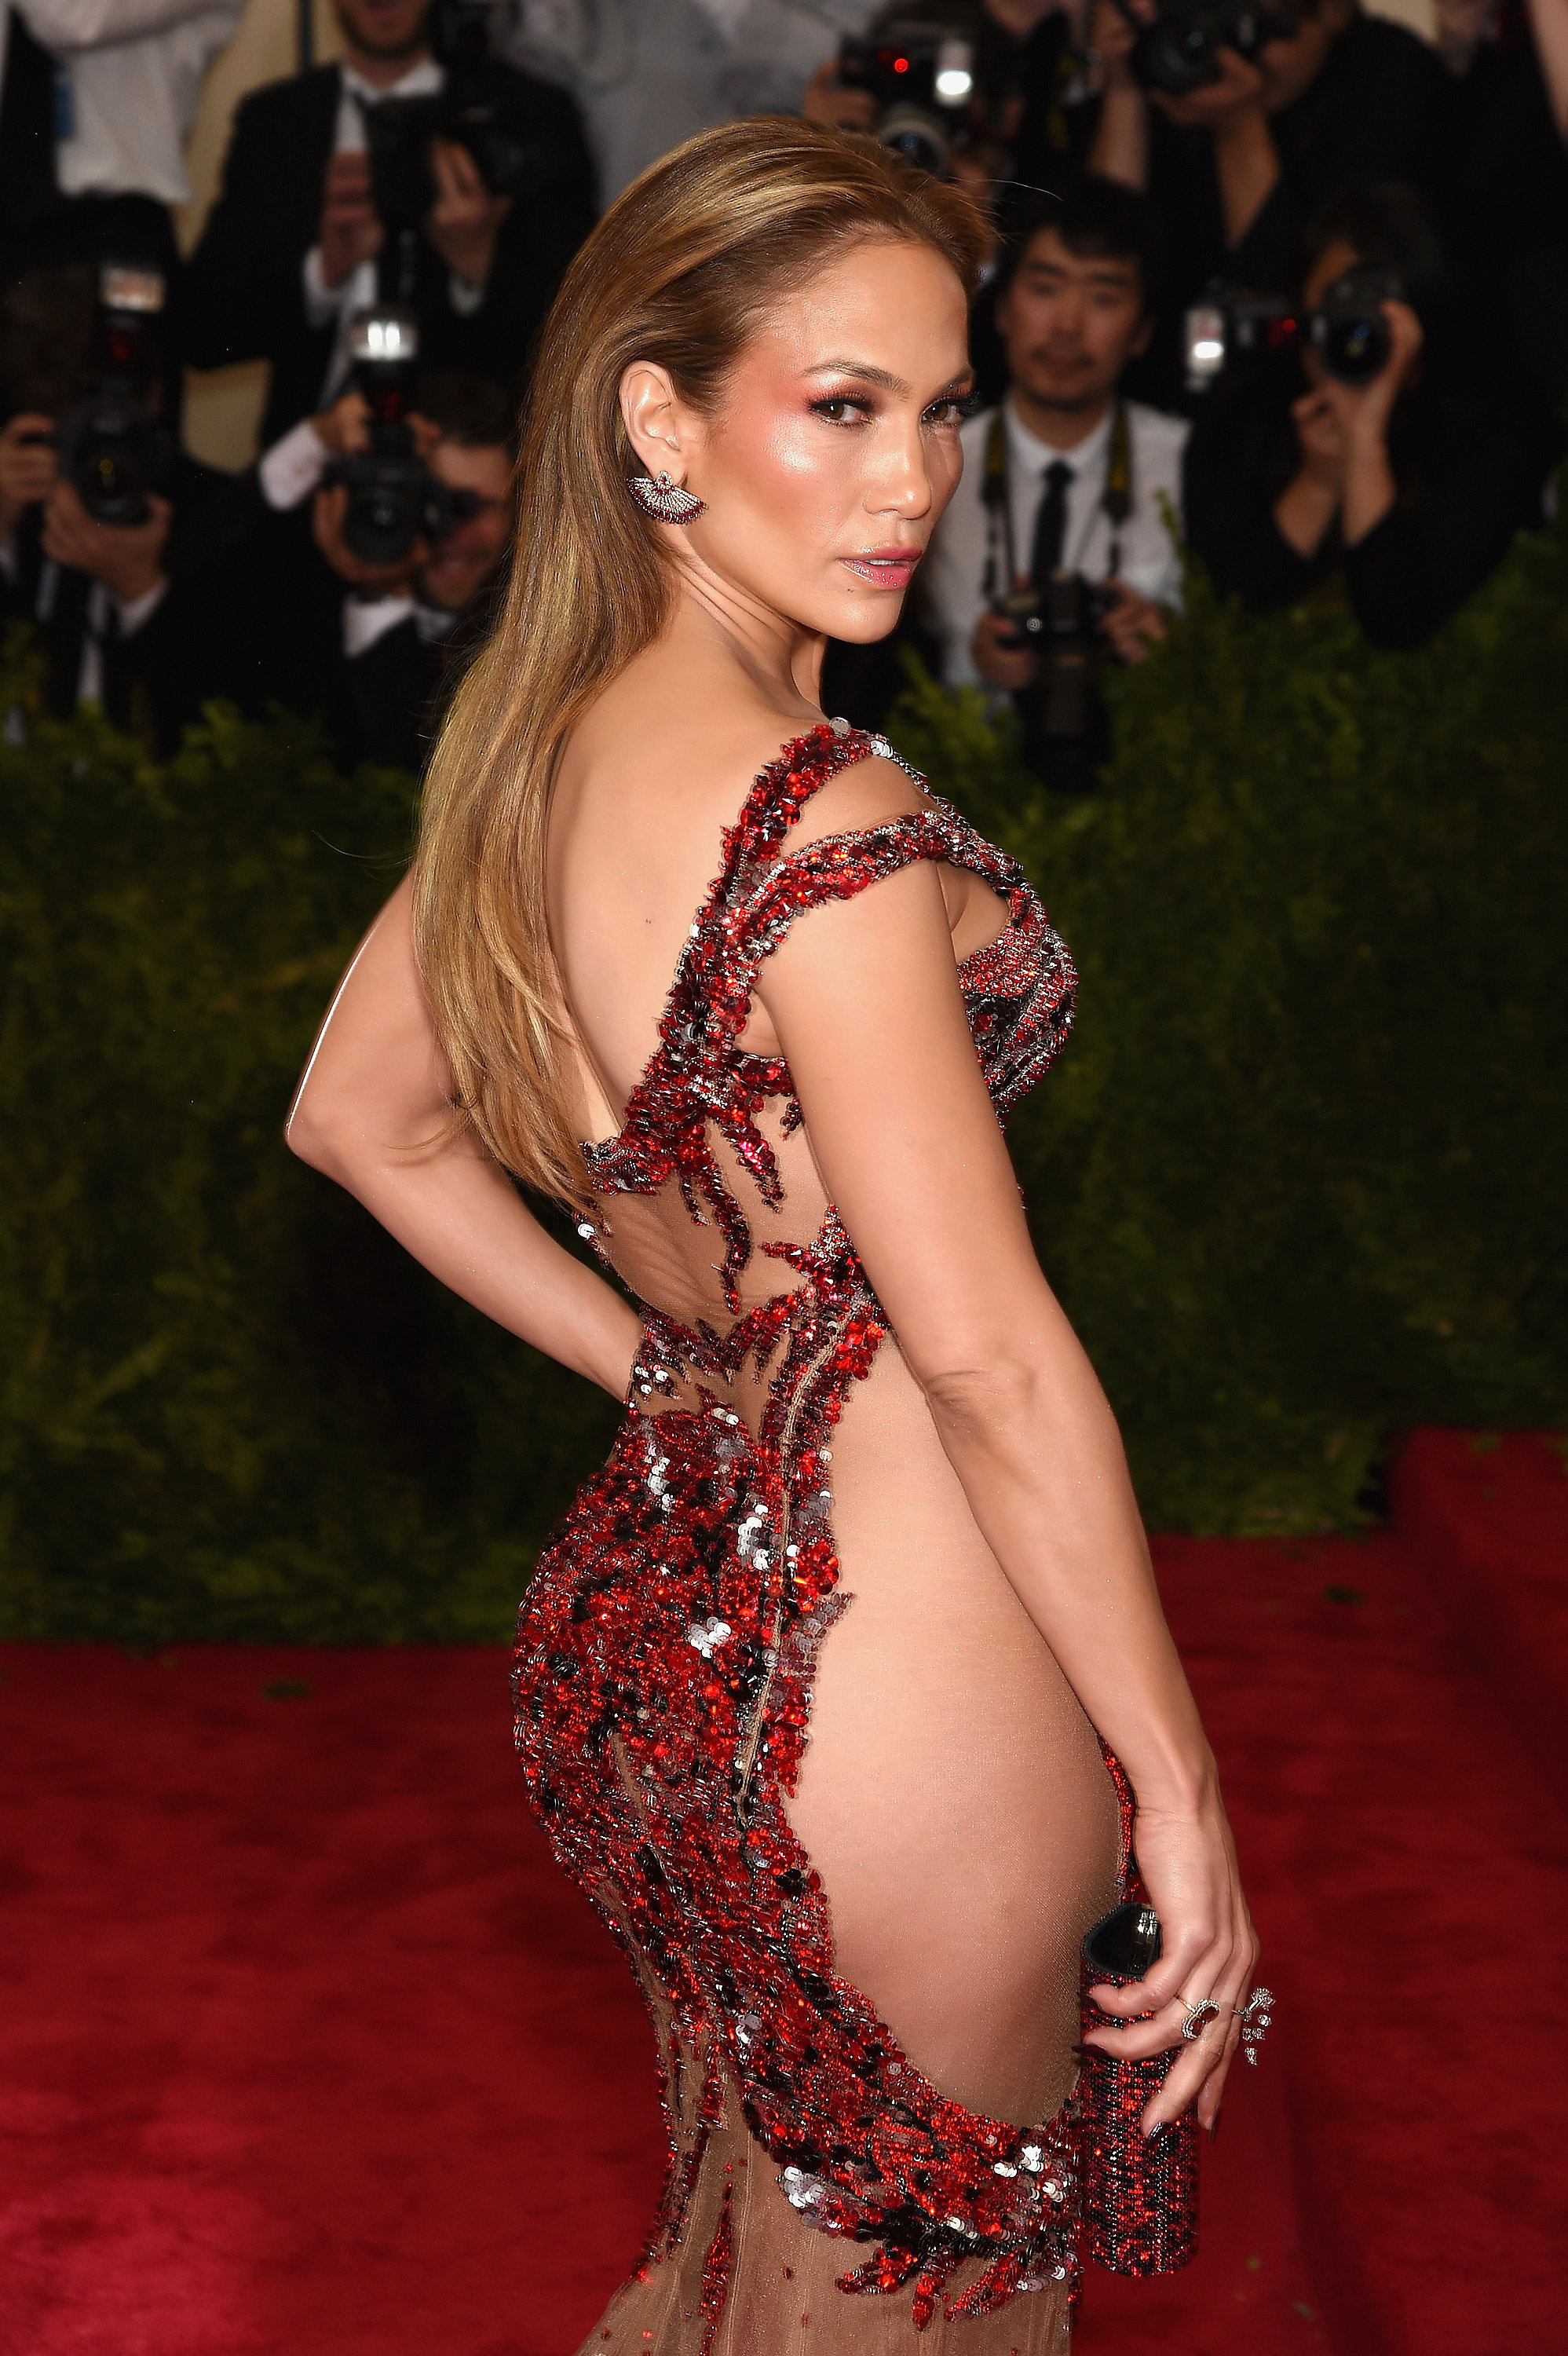 How to get a butt like j lo